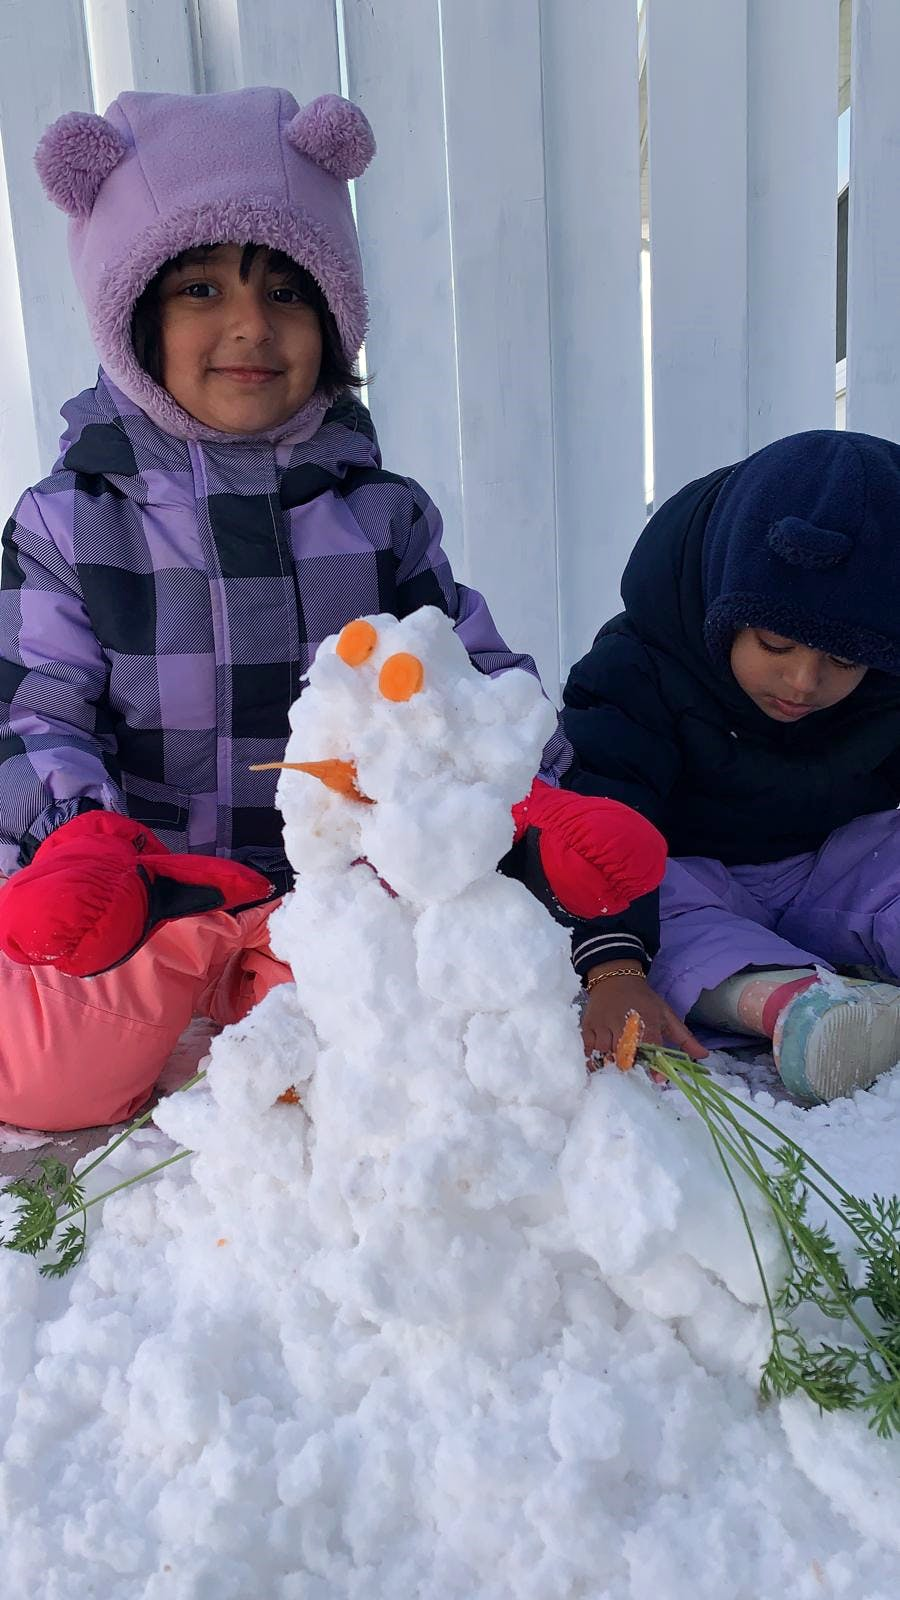 While last week's early snowfall caused chaos on the roads, it brought joy to the young and young at heart.  Two-year-old Joel Jaison Lukose was thrilled to see the snow whiten the landscape in Charlottetown on Tuesday and couldn't wait to try his hand at building a snowman.  His three and a half-year-old sister Hannah Maria gave her little brother a helping hand. That is a good-looking snowman! I'm sure there'll be many more!